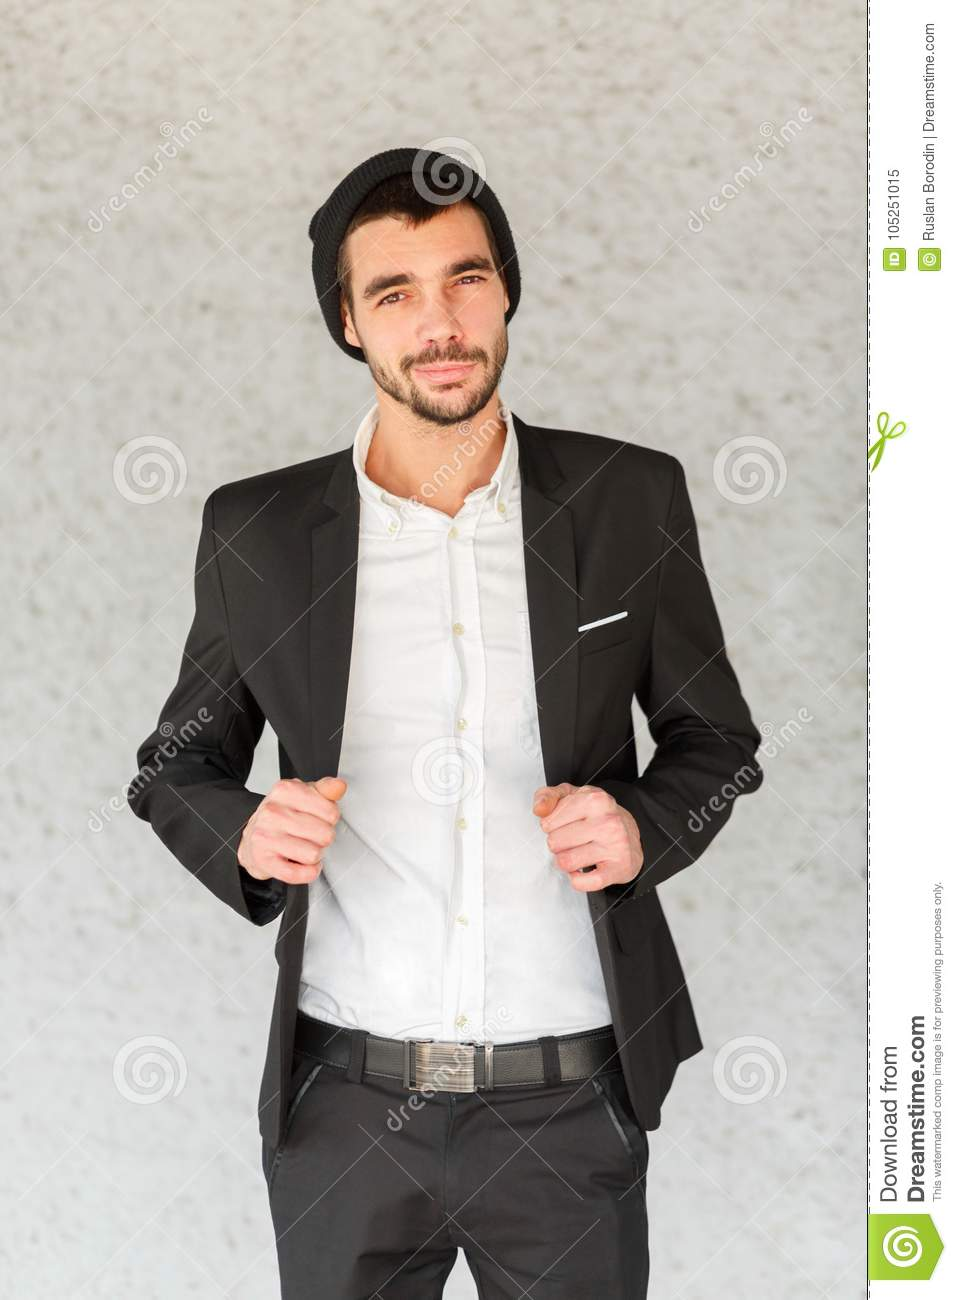 A young businessman adjusts a black suit against a gray background